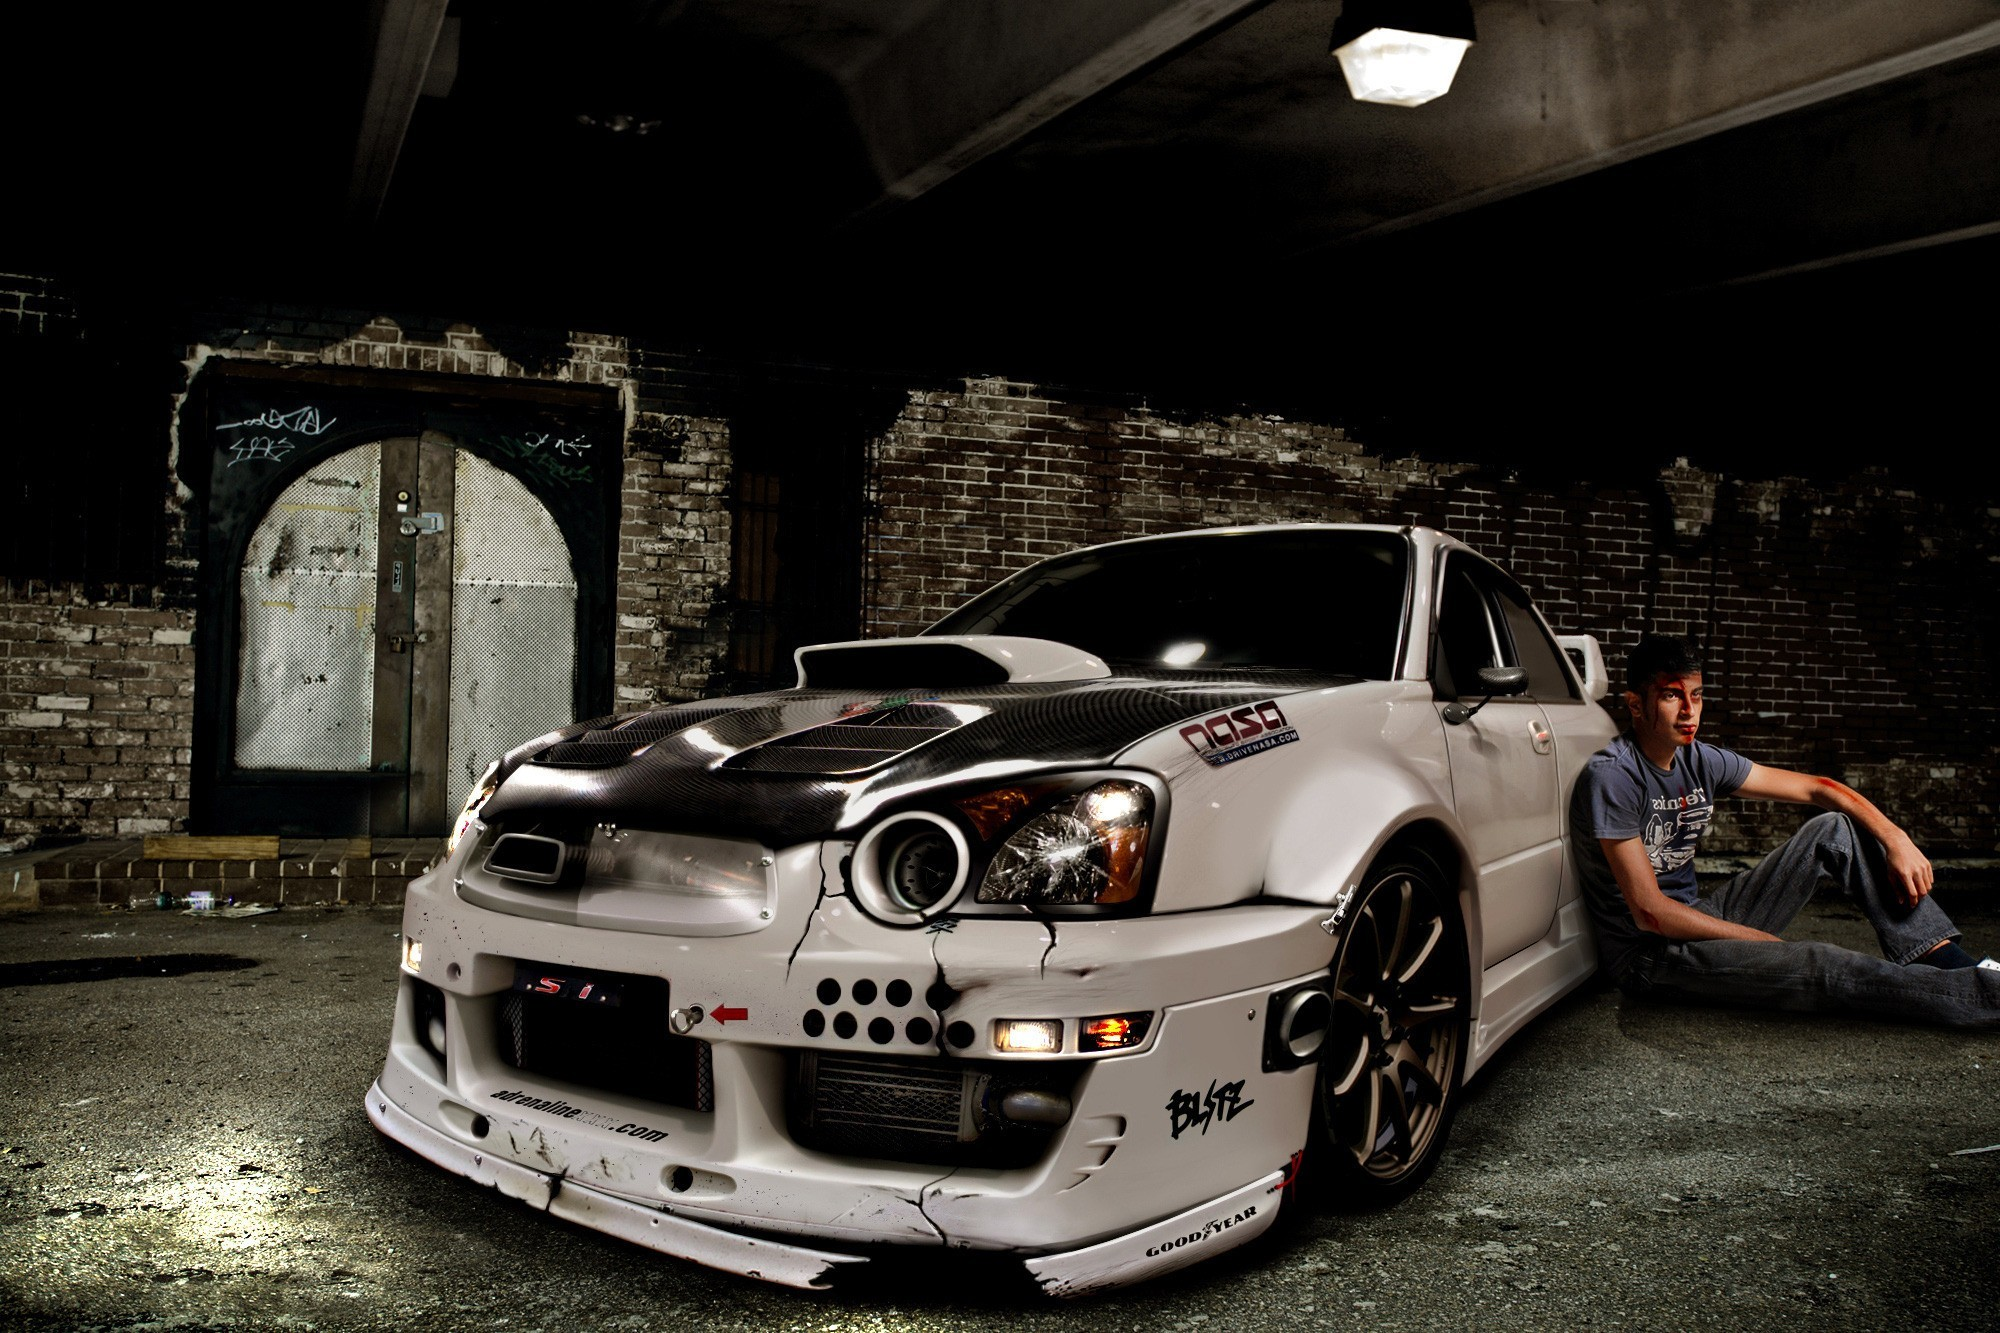 Tuner Car Wallpaper Hd Tuned Car Wallpapers 65 Images